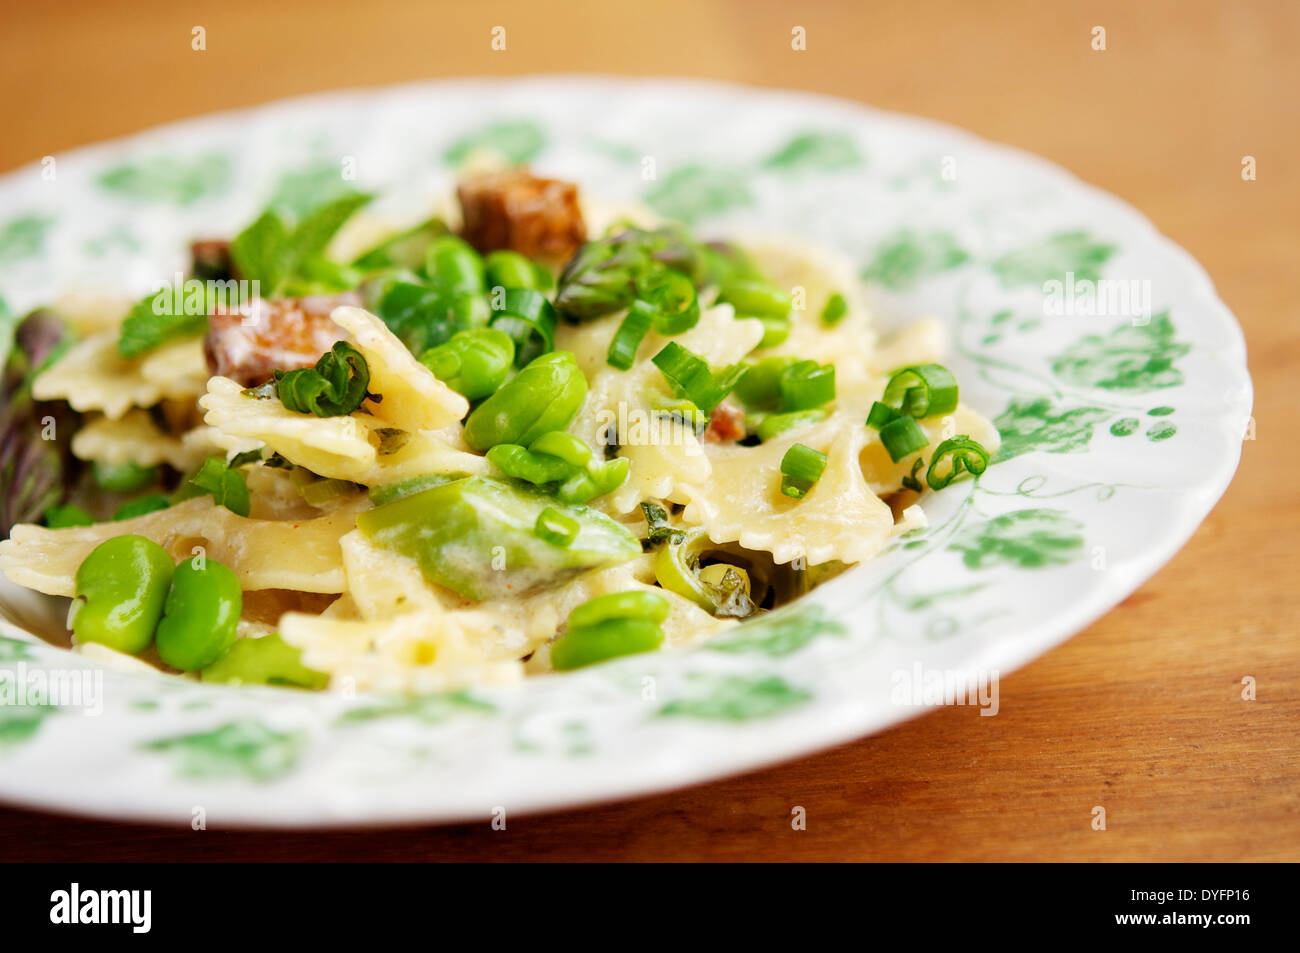 Spring meal with fresh fava beans, green asparagus, bow tie pasta and spicy tofu pieces. - Stock Image